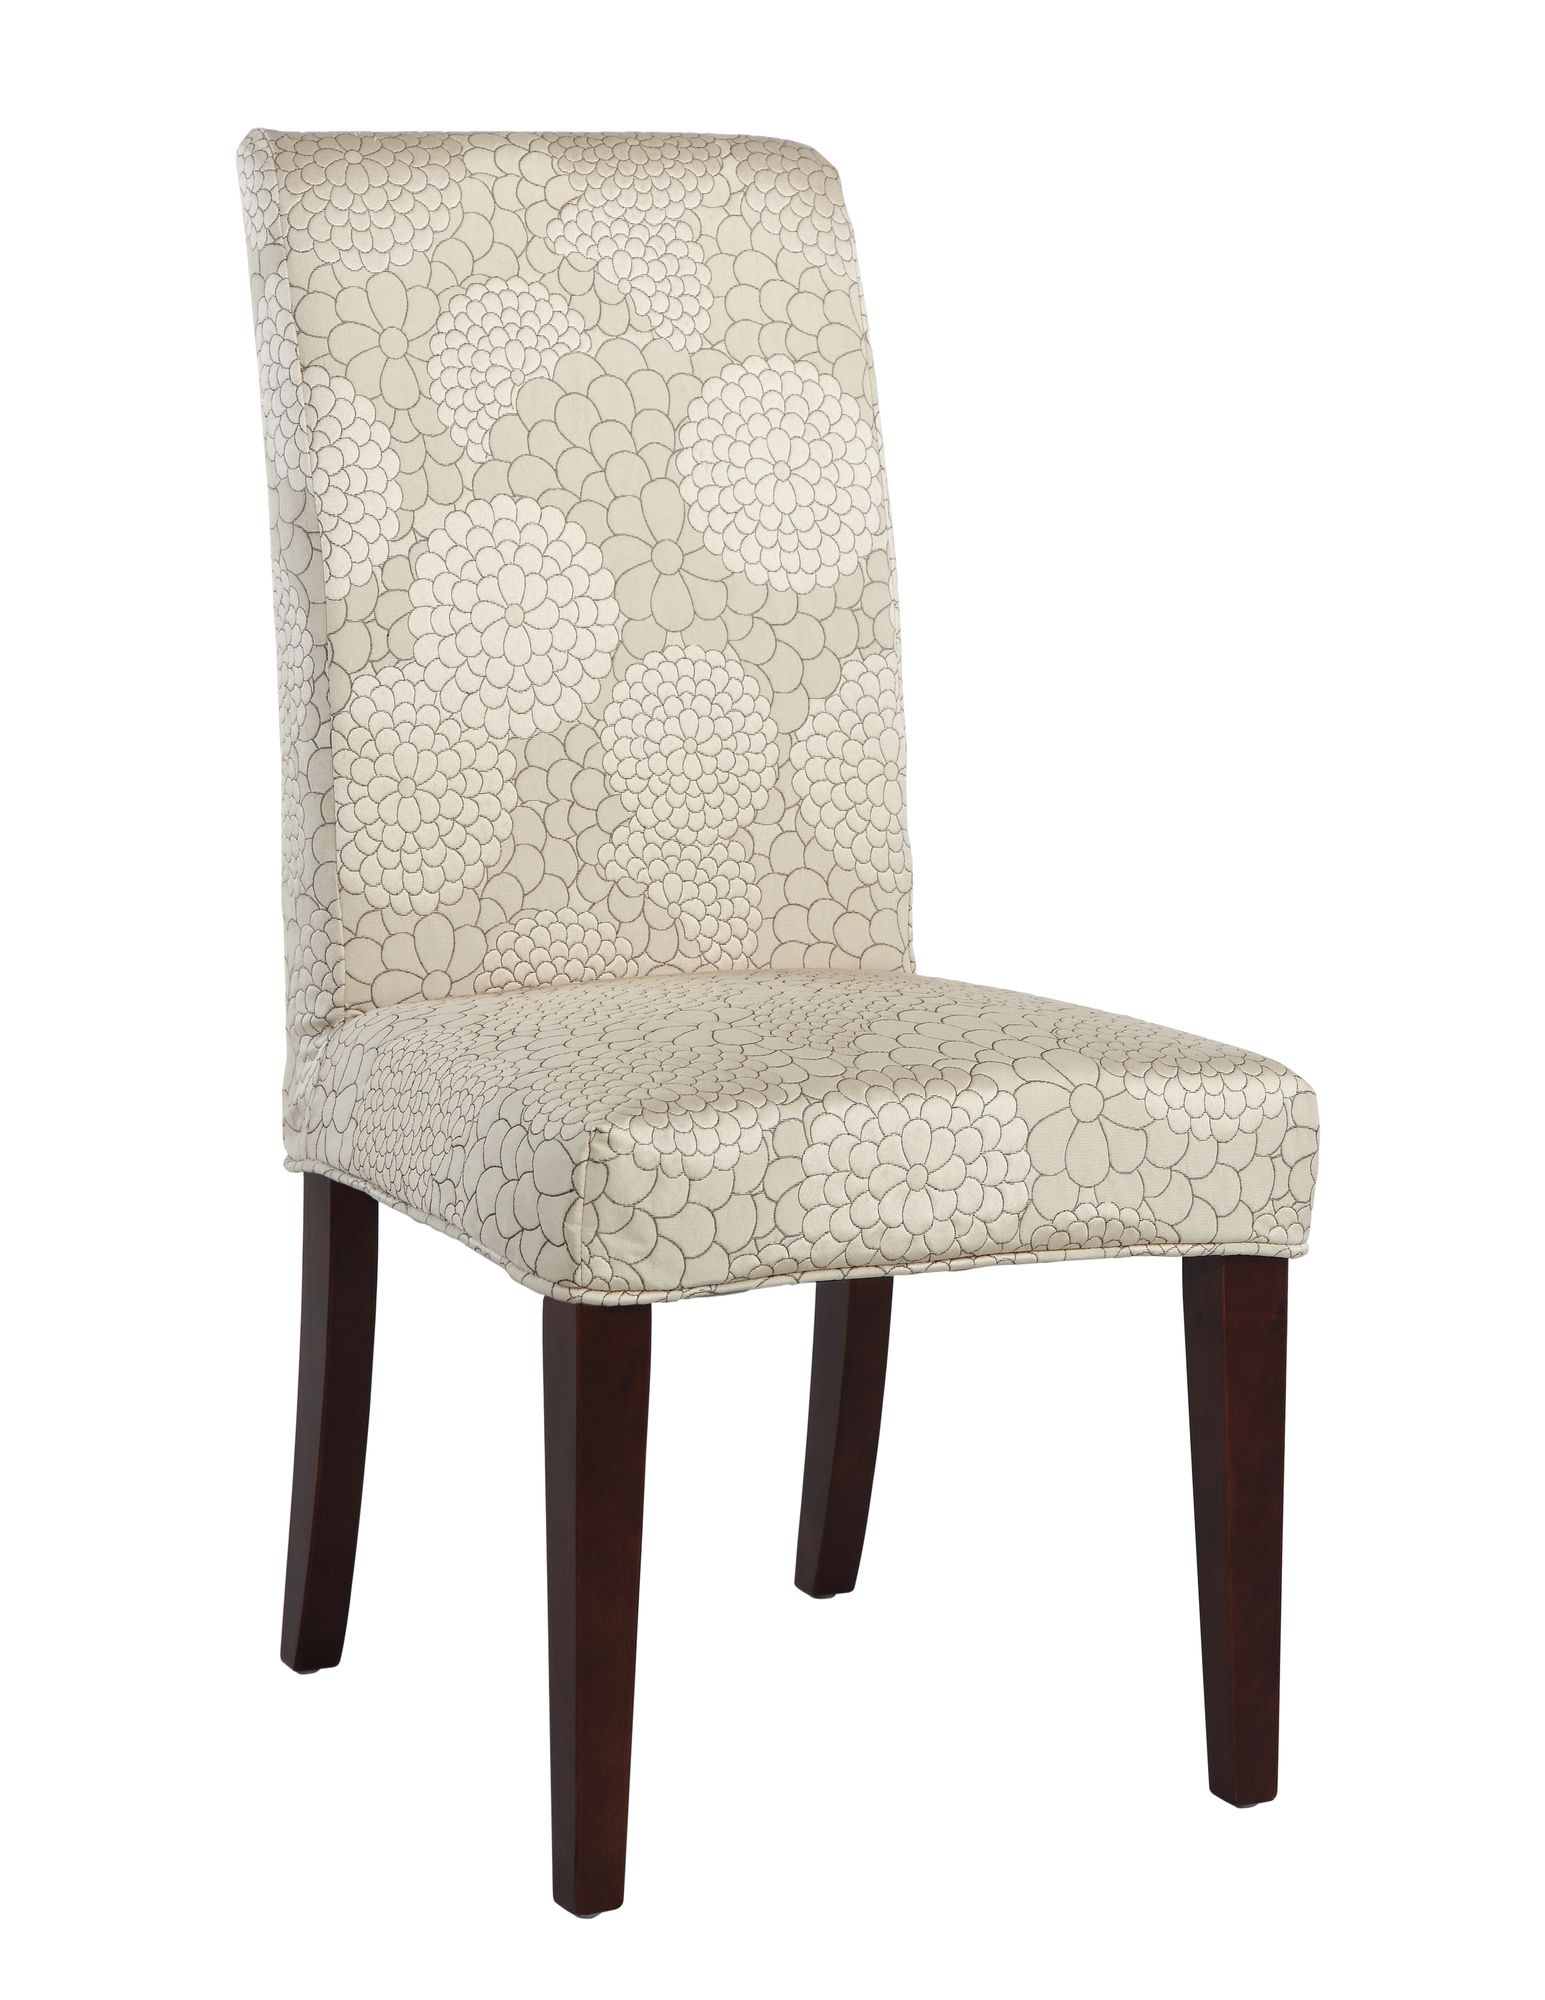 Powell Parson Chair Slipcover Slipcovers for chairs